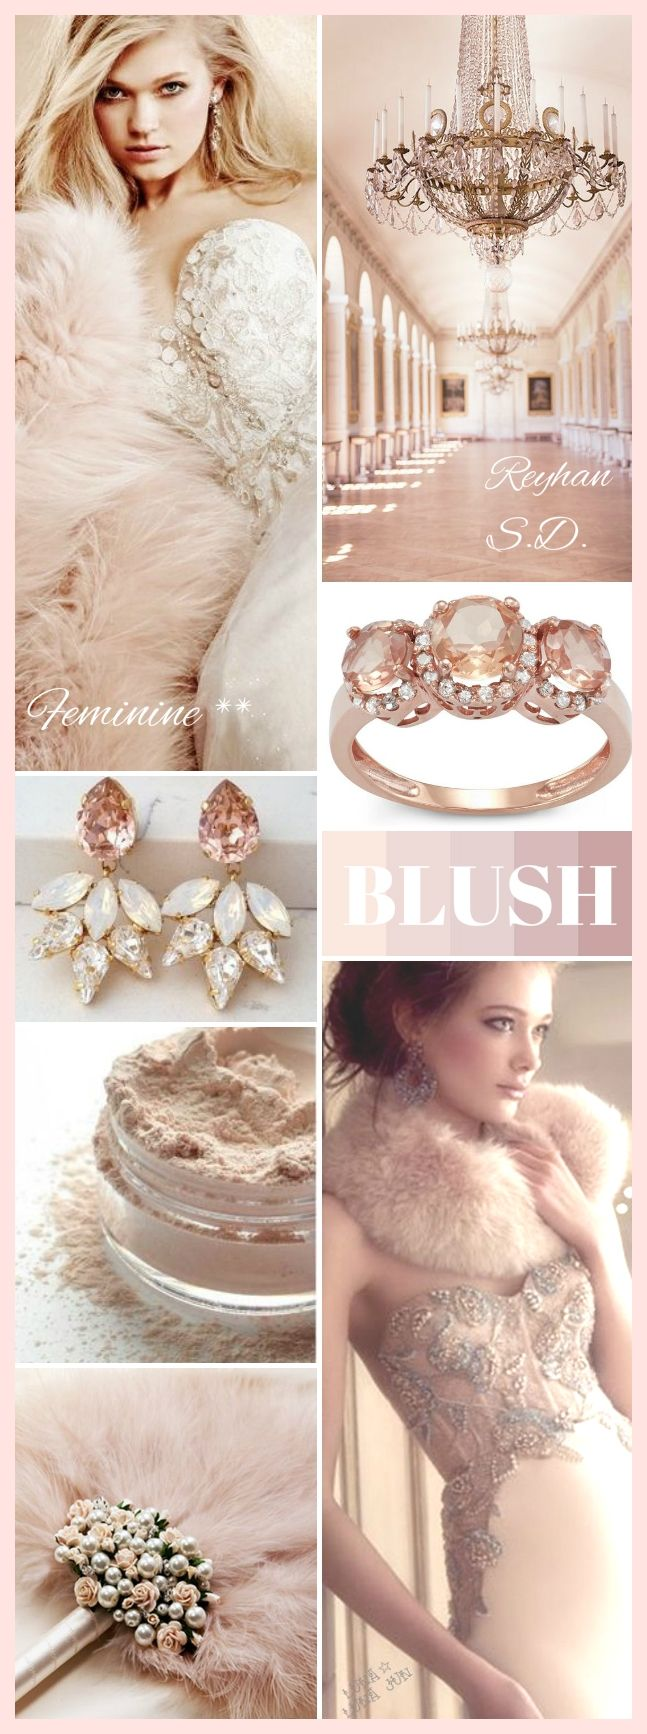 best blush images on pinterest anonymous bags and bangle